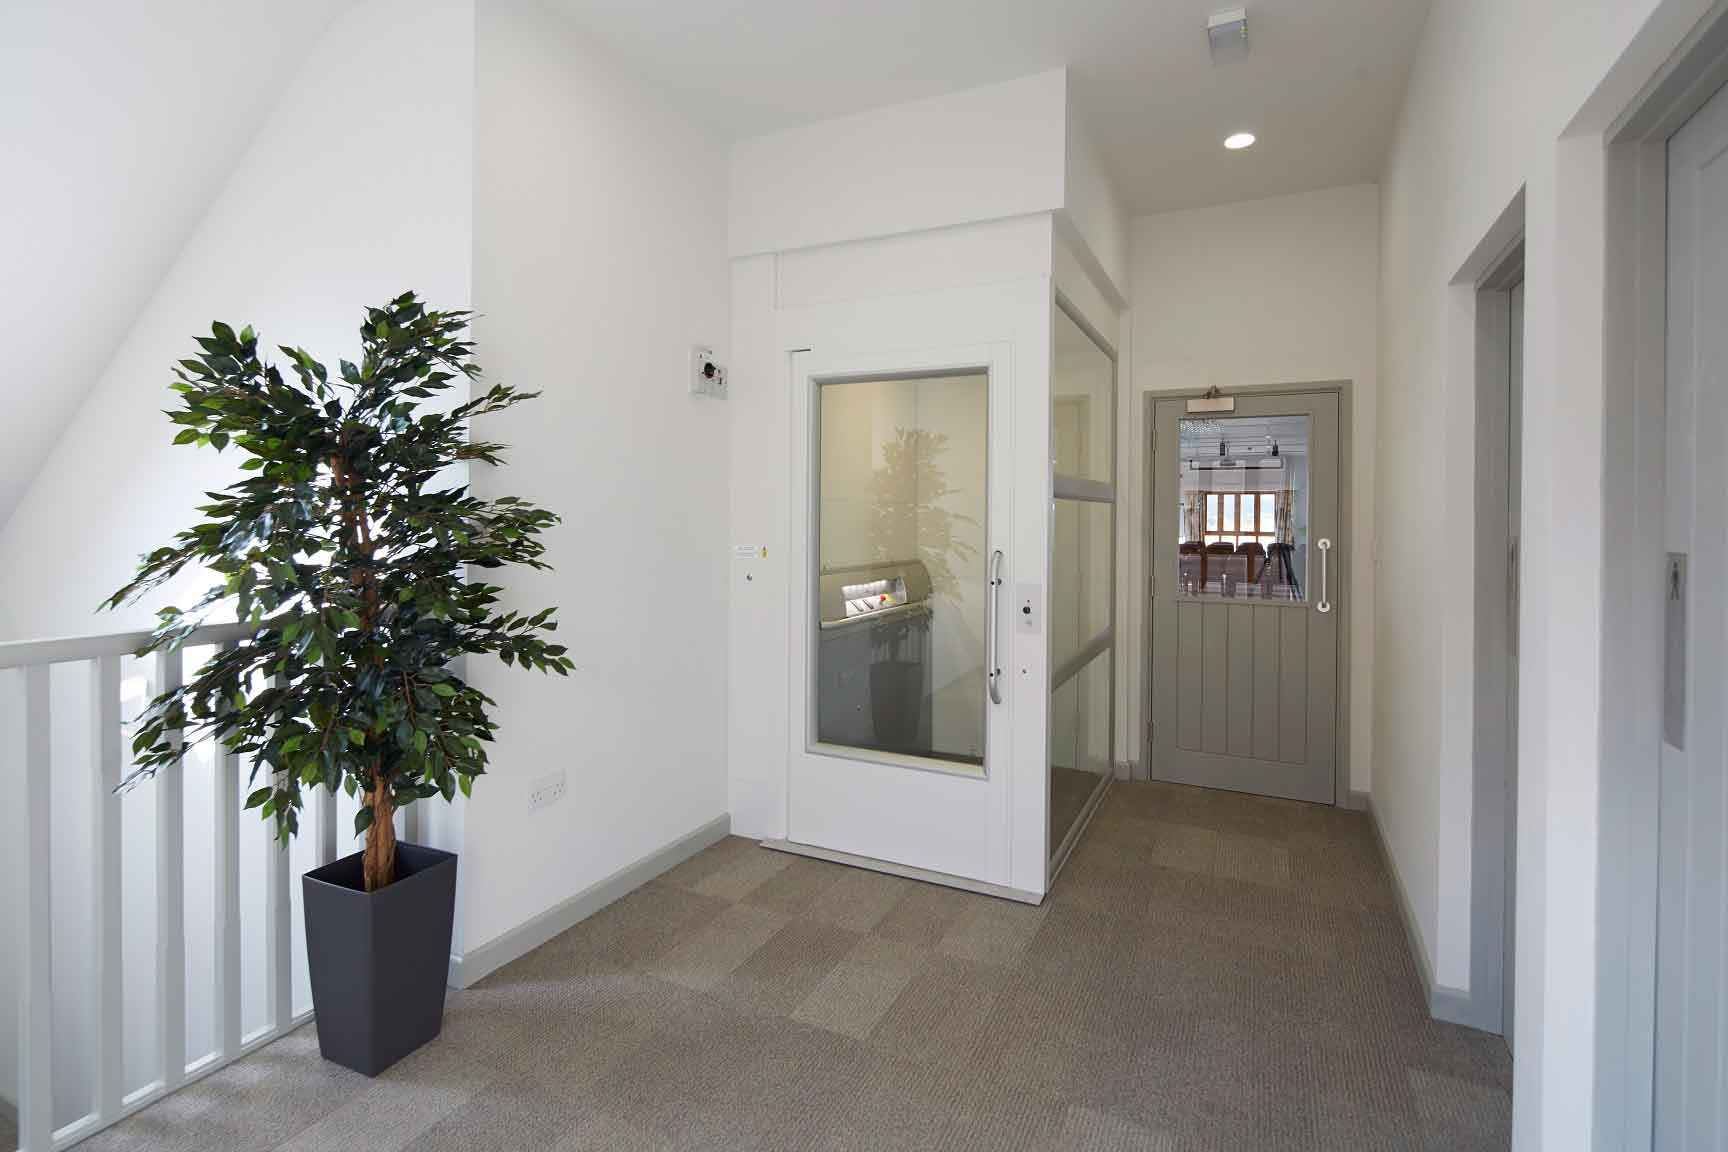 Home lift in upstairs hallway